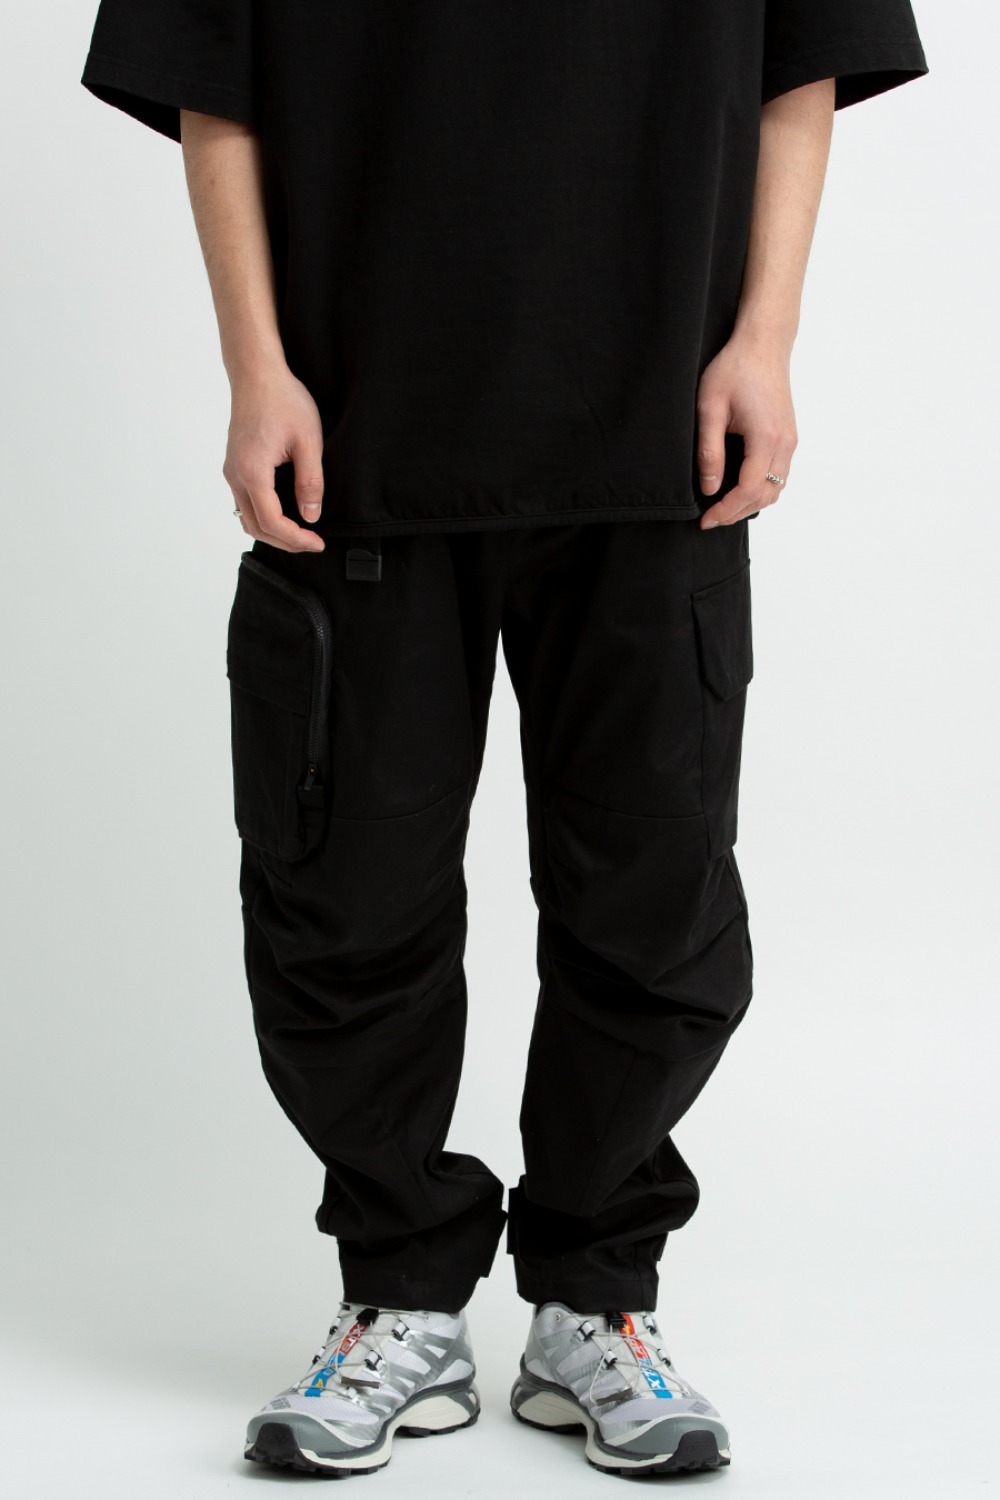 CLOUD NINE PANTS(ZYPNX21005) BLACK